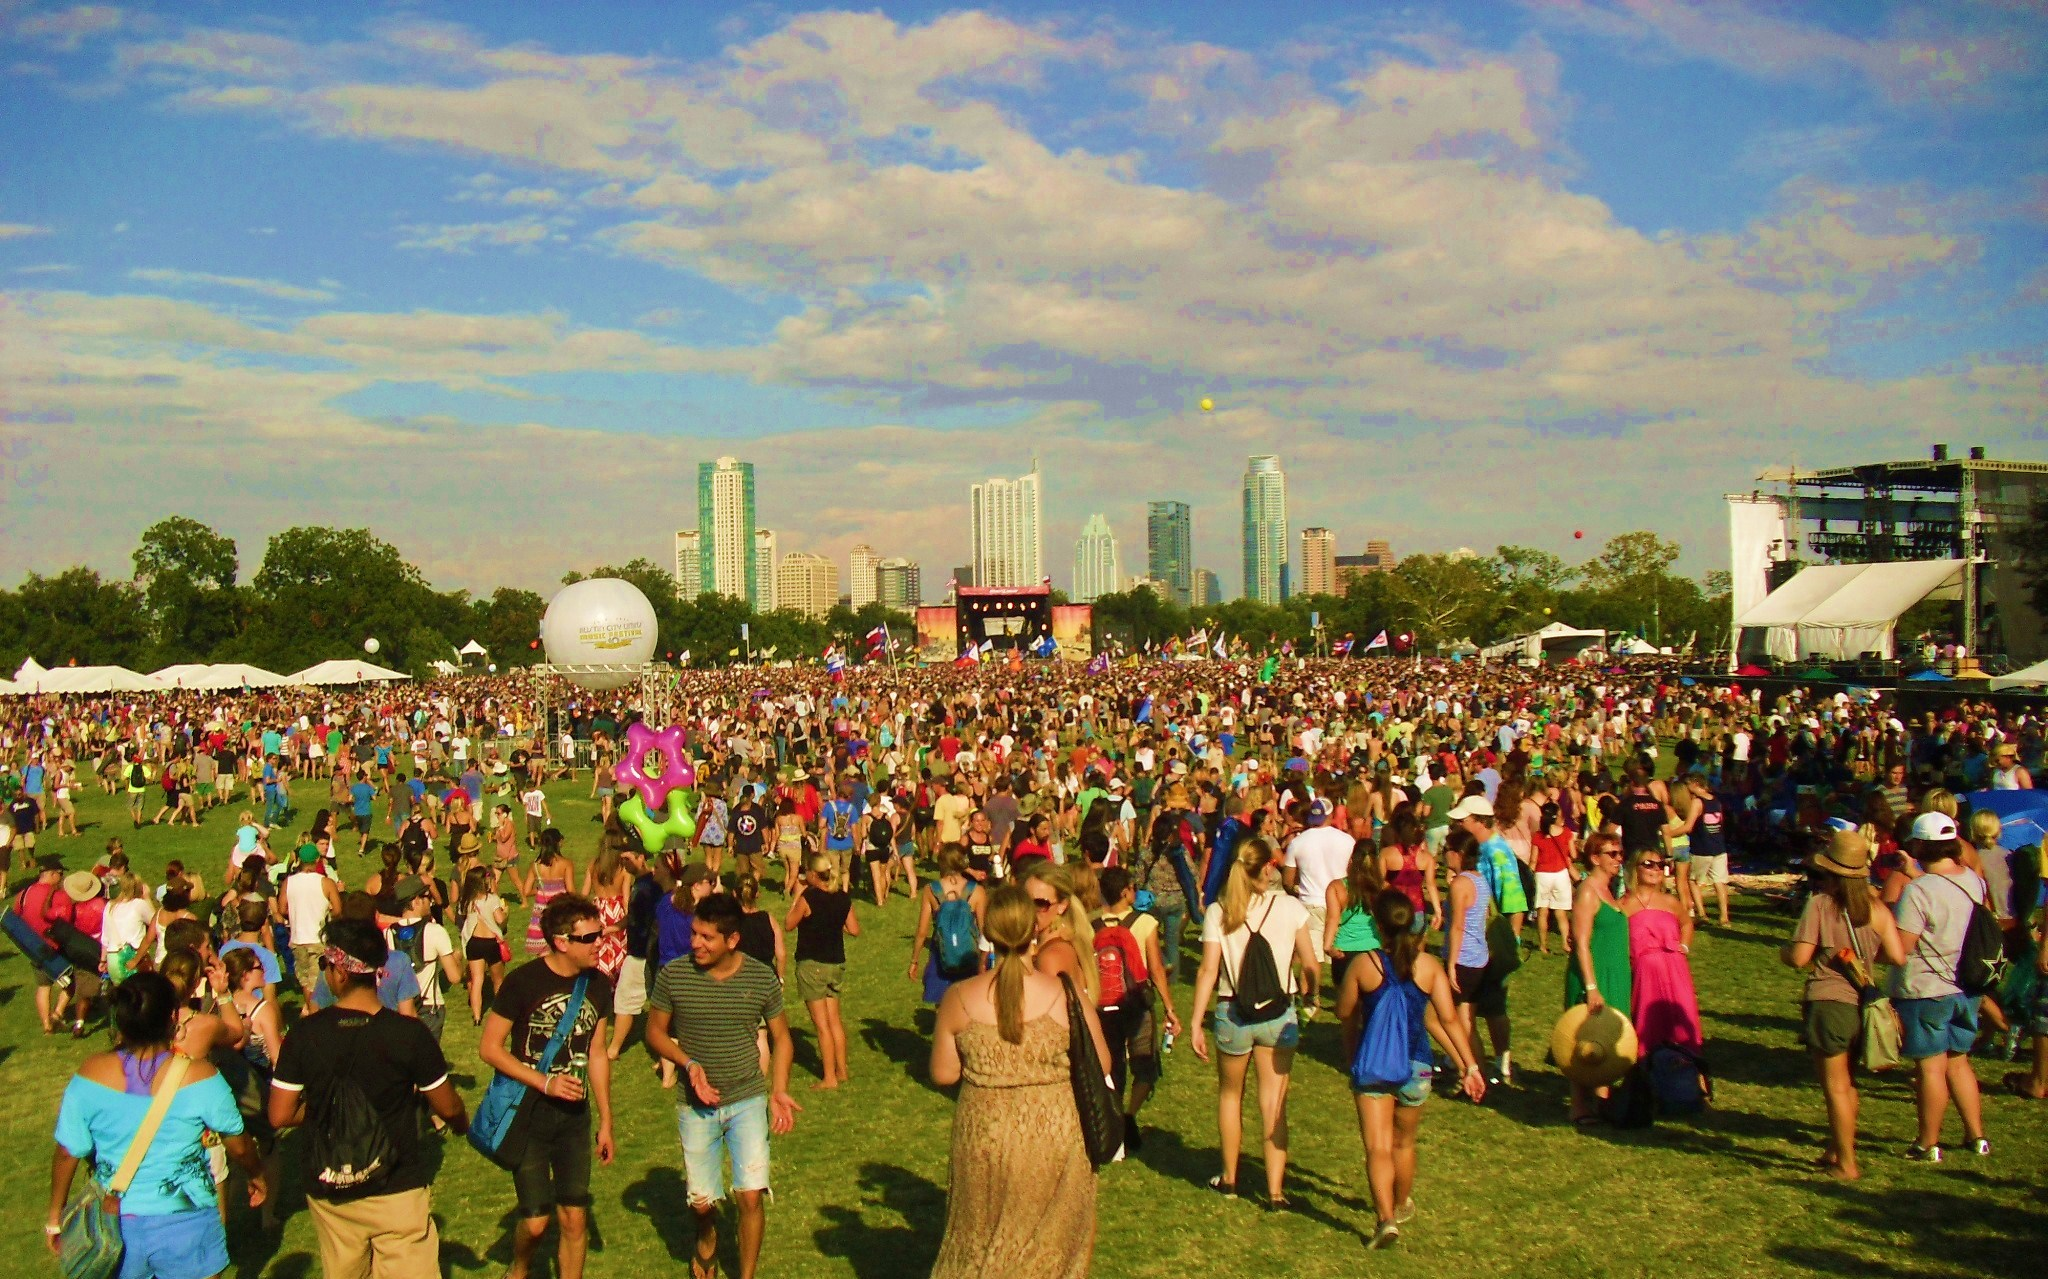 EVENT N°2 : ACL Music Festival Acl-panoramic